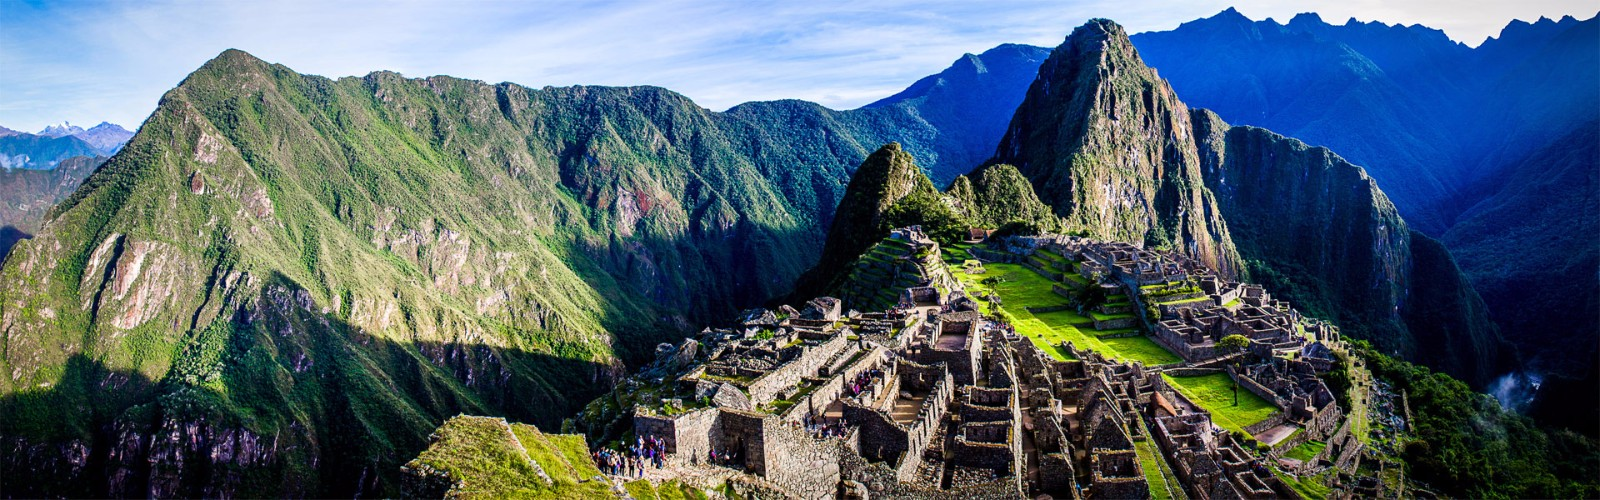 Traveller Tour South America - Chile & Peru Tour | Wendy Wu Tours